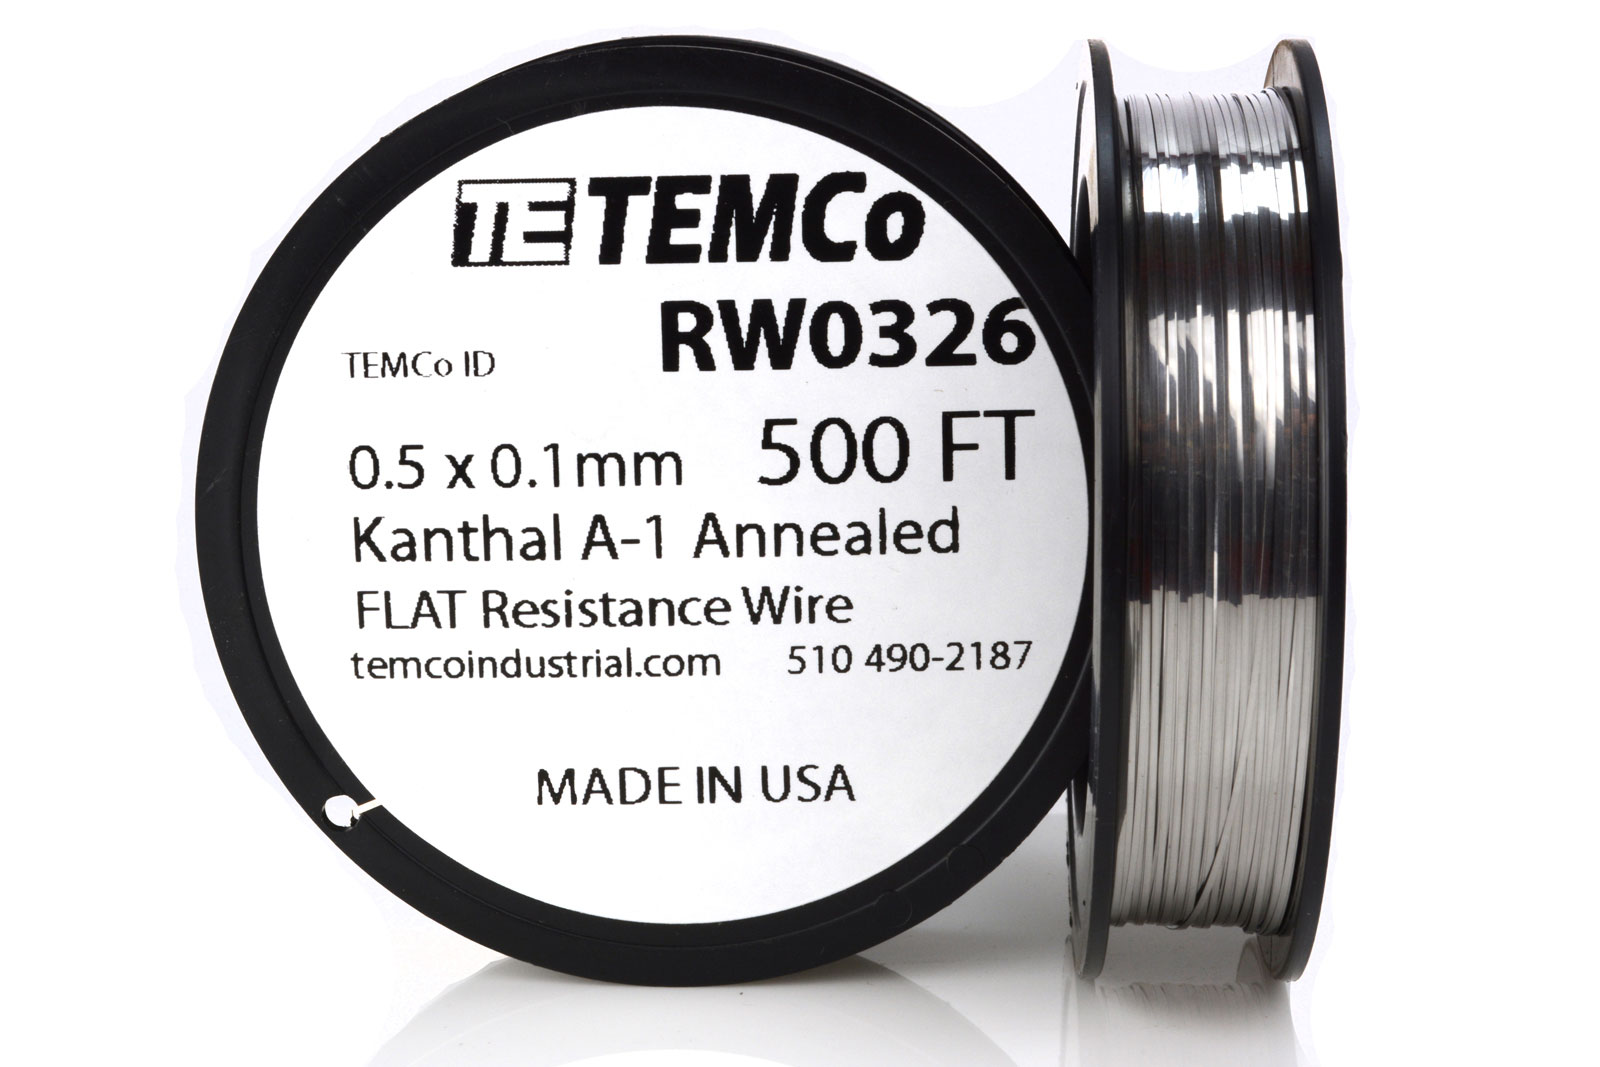 ribbon wire temco flat ribbon kanthal a1 wire 0 8mm x 0 1mm 50 ribbon wire temco flat ribbon kanthal a1 wire 0 5mm x 0 1mm 500 ft resistance a 1